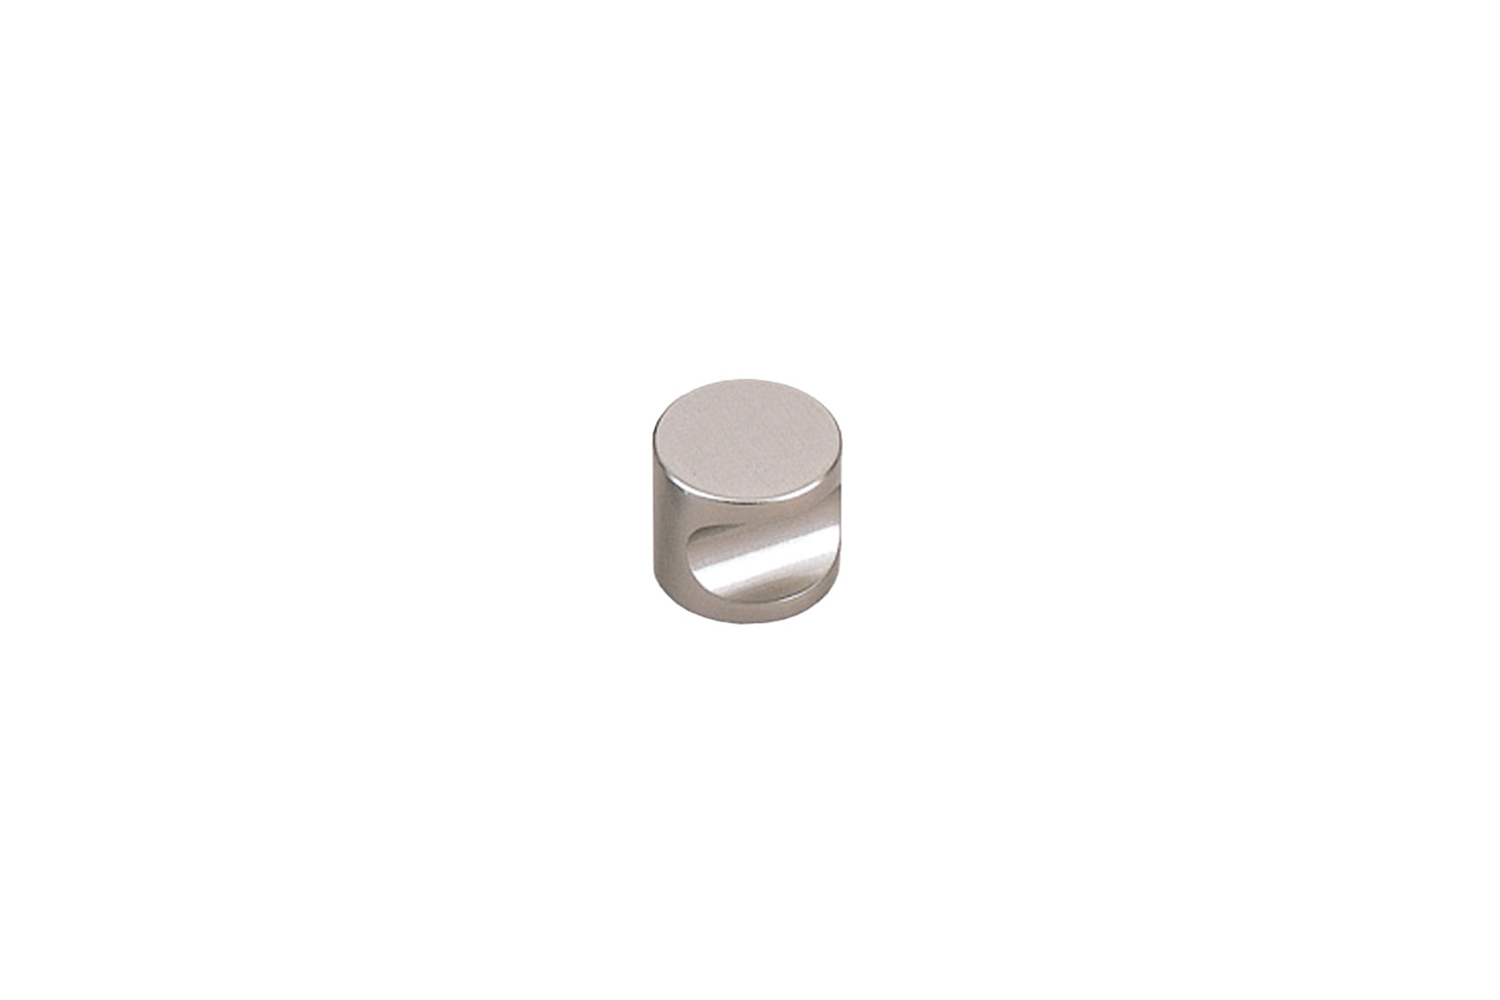 the sugatsune plated solid brass cabinet knob (sug mrb l sn t) is \$9.86 at the 19